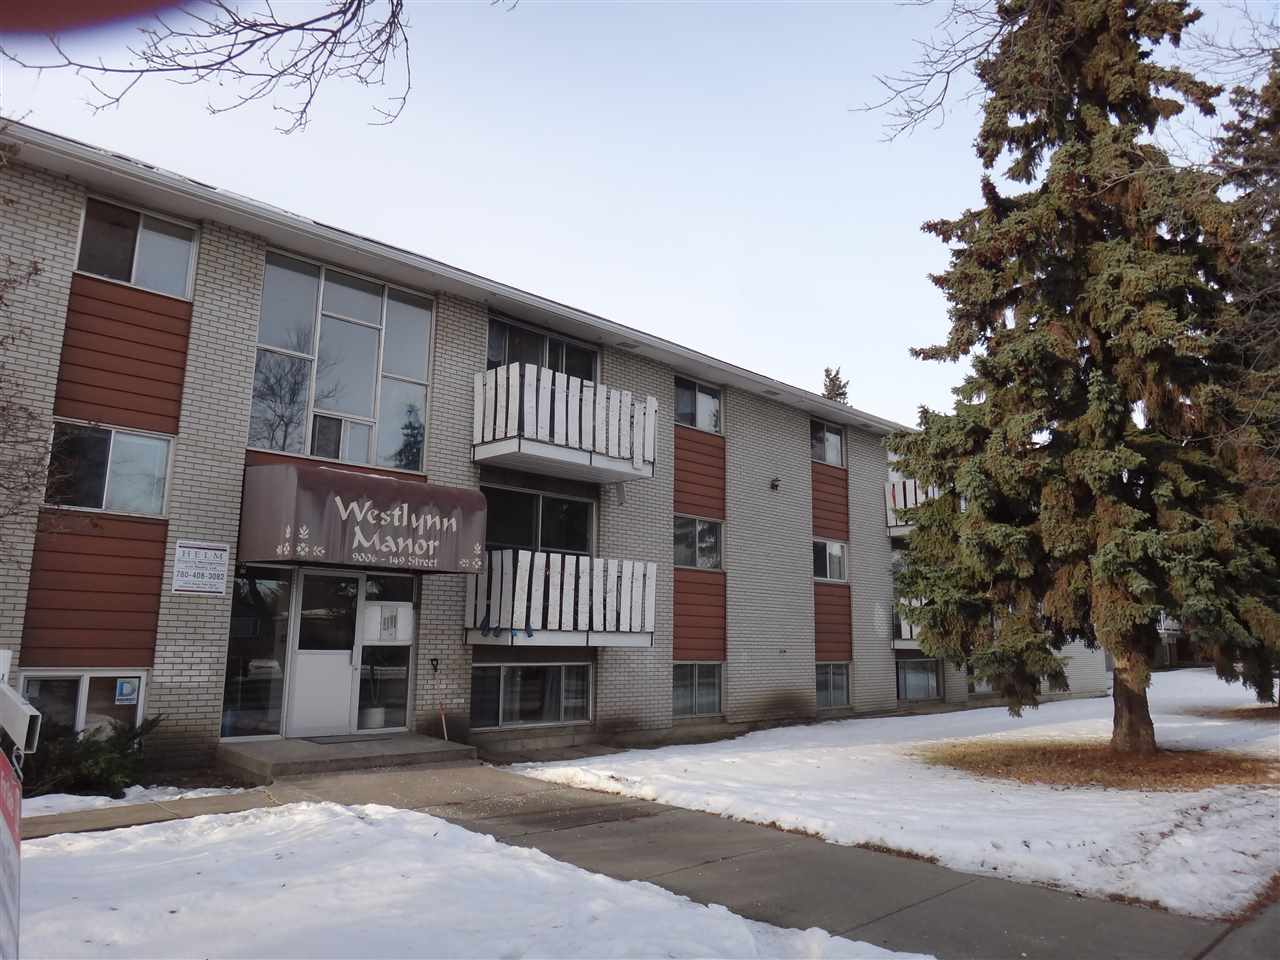 RENOVATED SECOND FLOOR CONDO UNIT WITH LARGE BALCONY.UPGRADED WITH NEW KITCHEN,COUNTERTOPS,STAINLESS STEAL APPLIANCES,BATHROOM,PAINT,FLOORING,TRIMS,AND LIGHT FIXTURES.GOOD SIZE BEDROOM WITH A BIG CLOSET.STORAGE IN THE UNIT.WELL MAITAINED BUILDING.LOW CONDO FEE.GREAT WEST EDMONTON LOCATION.CLOSE TO ALL AMENITIES.